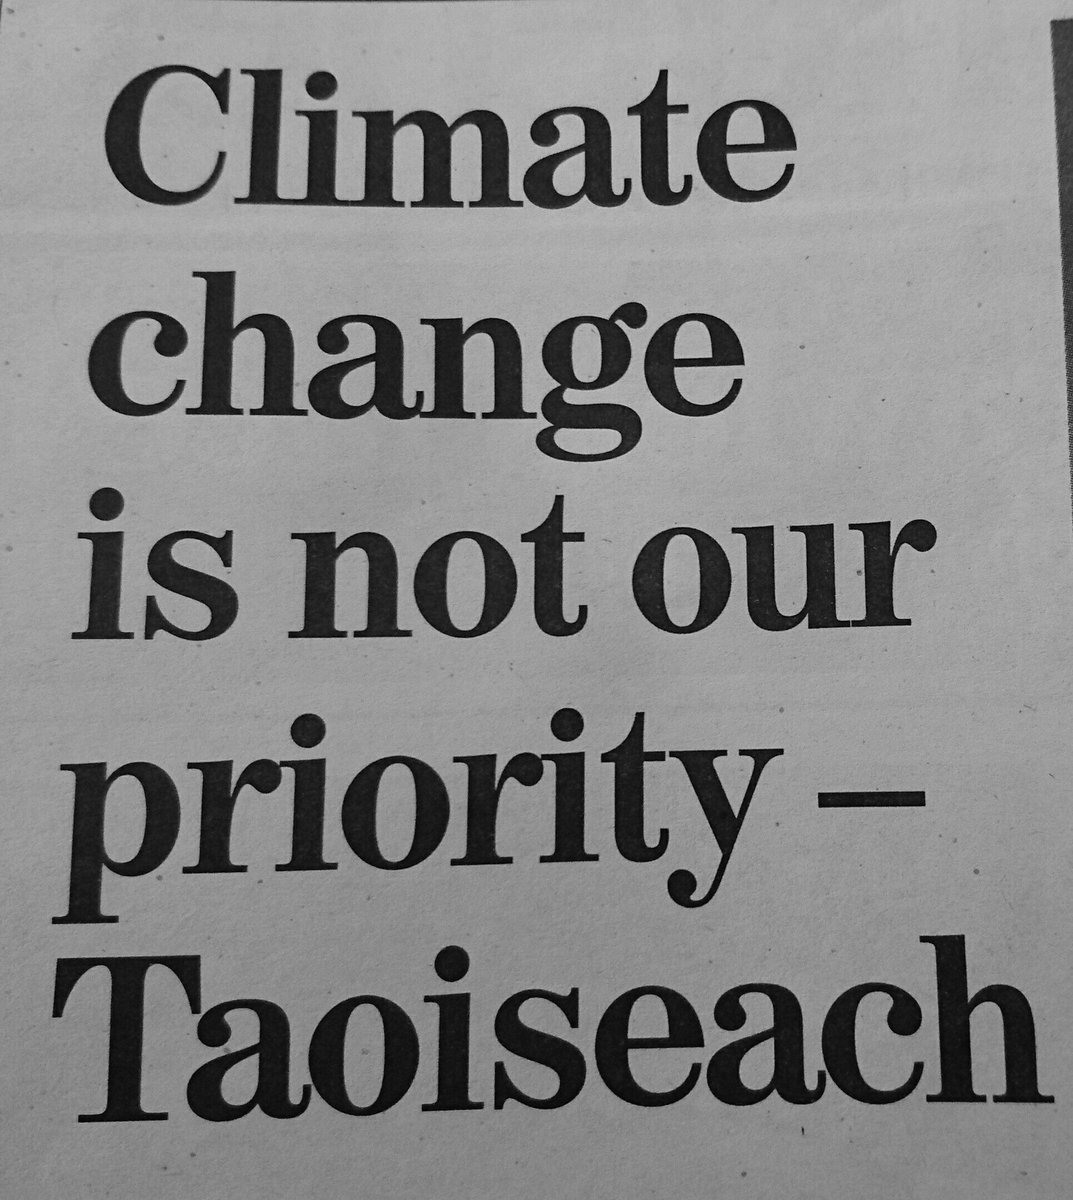 In Ireland, the priorities are cows and jobs for commuters. Floods are acceptable. https://t.co/BeJf3wLgM9